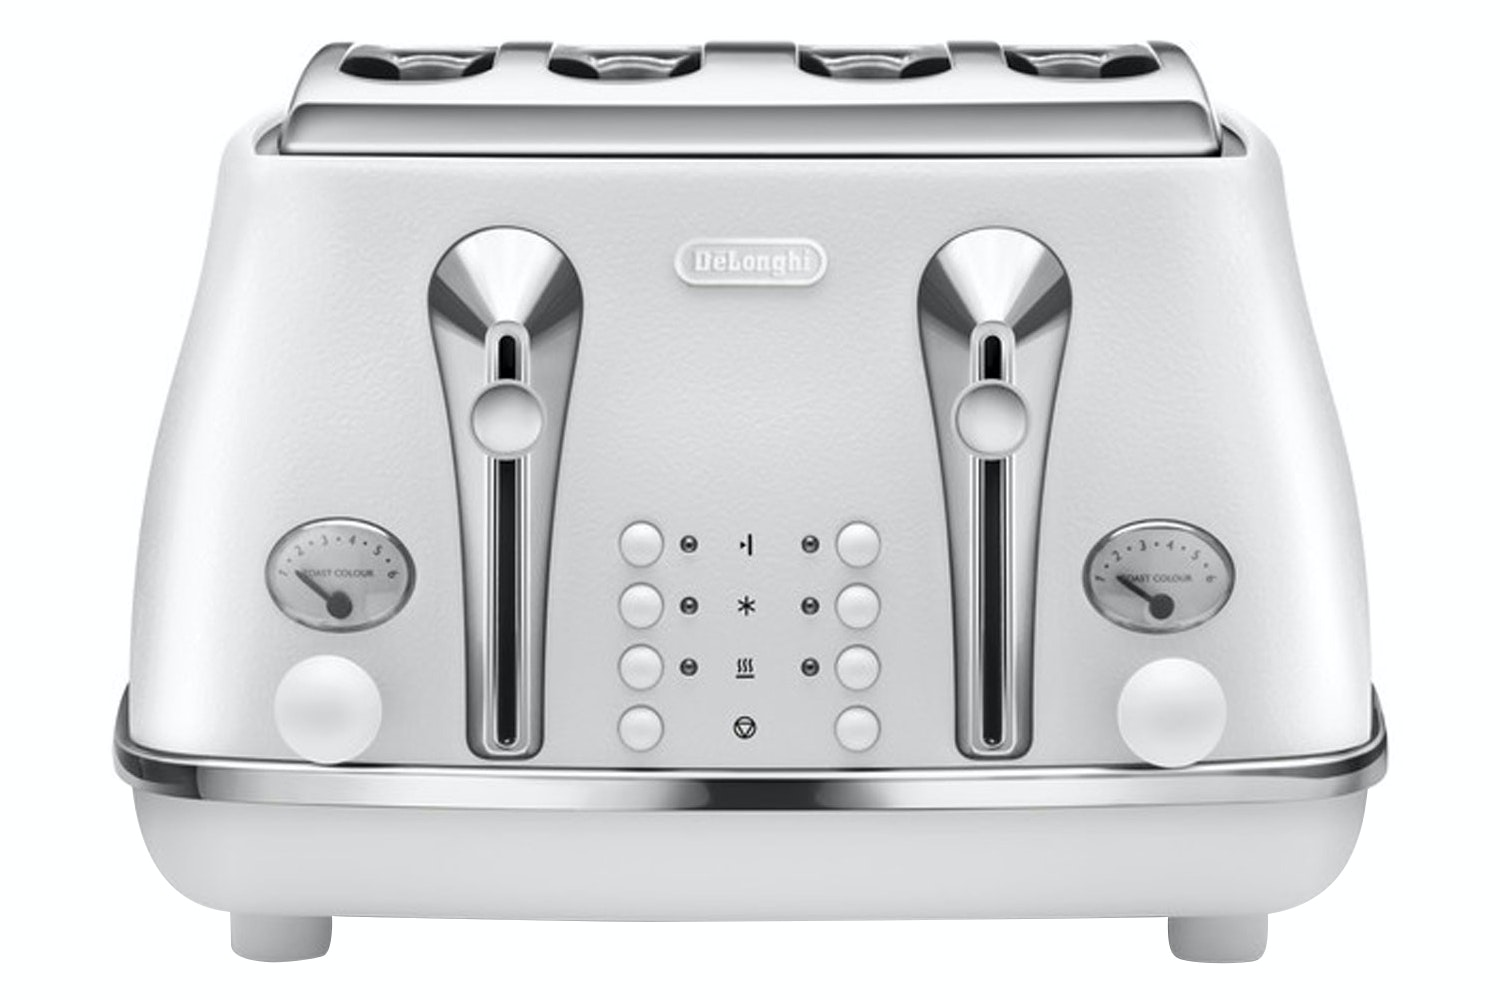 Delonghi 4 Slice Icona Elements Toaster | White